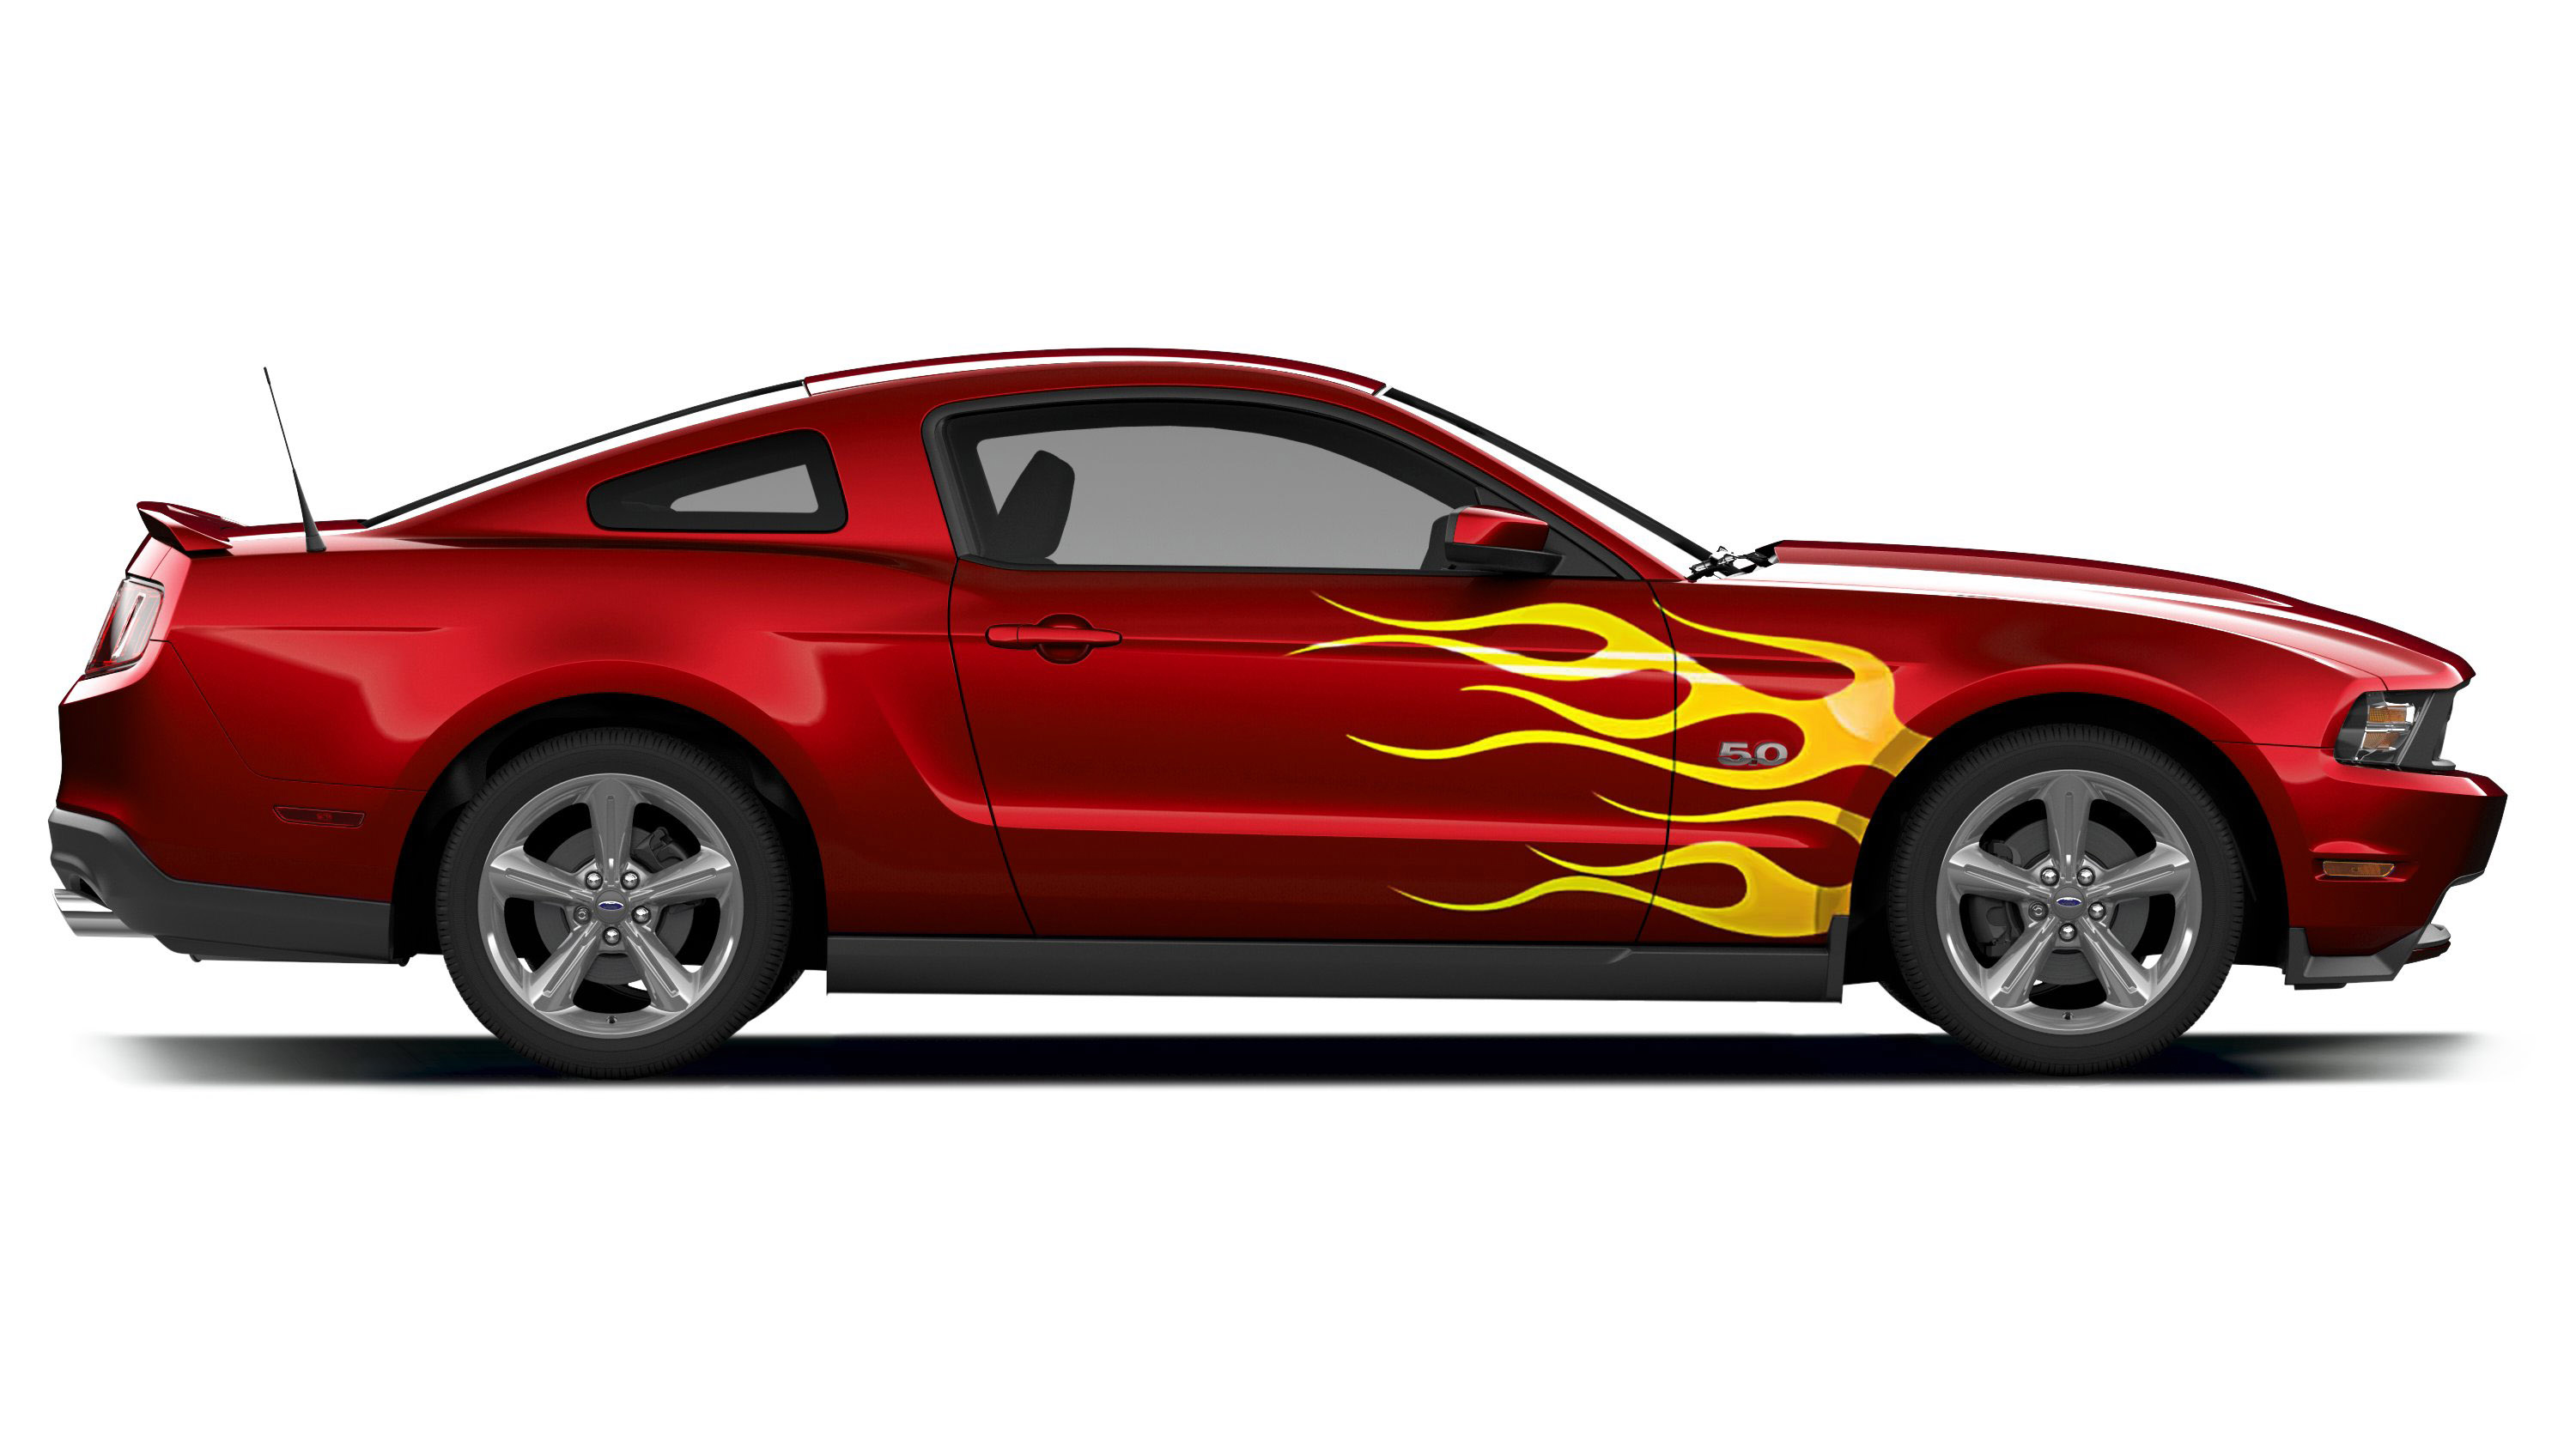 Corvette Clipart - Clipartion.com